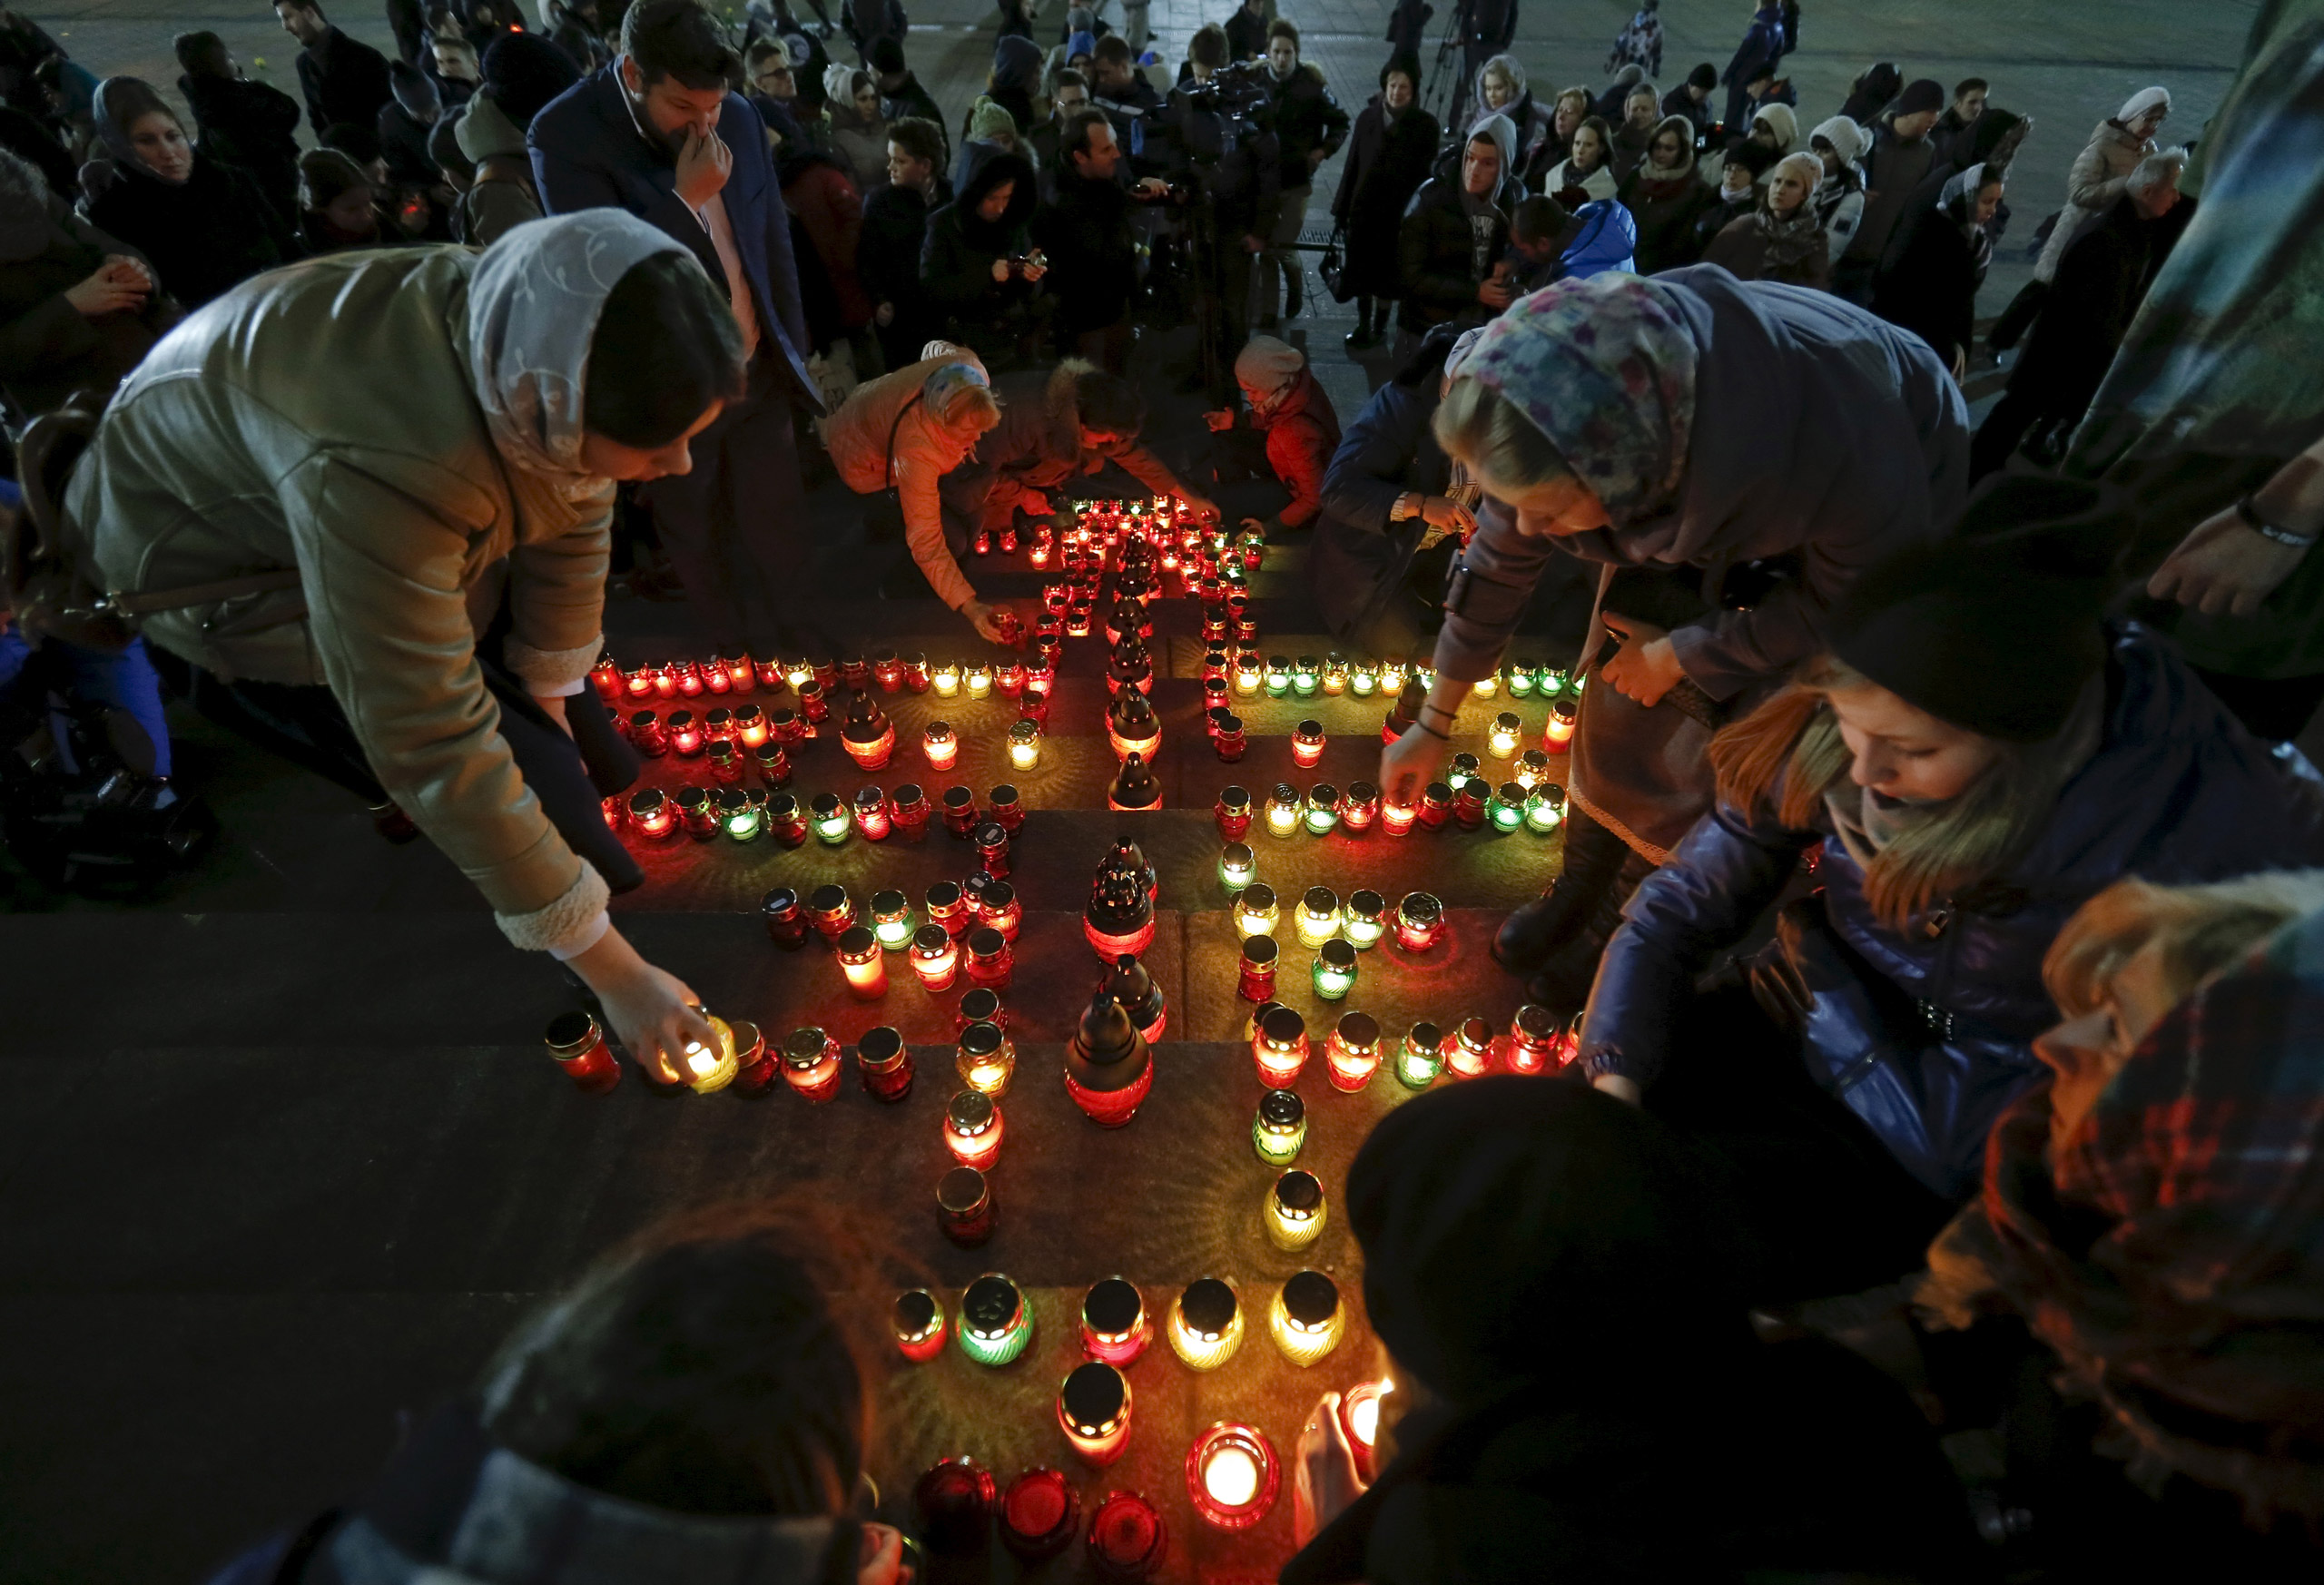 People arrange candles to make a cross to commemorate 224 victims of a Russian airliner which crashed in Egypt, on the stairs of the Christ the Saviour Cathedral in Moscow on Nov. 1, 2015.